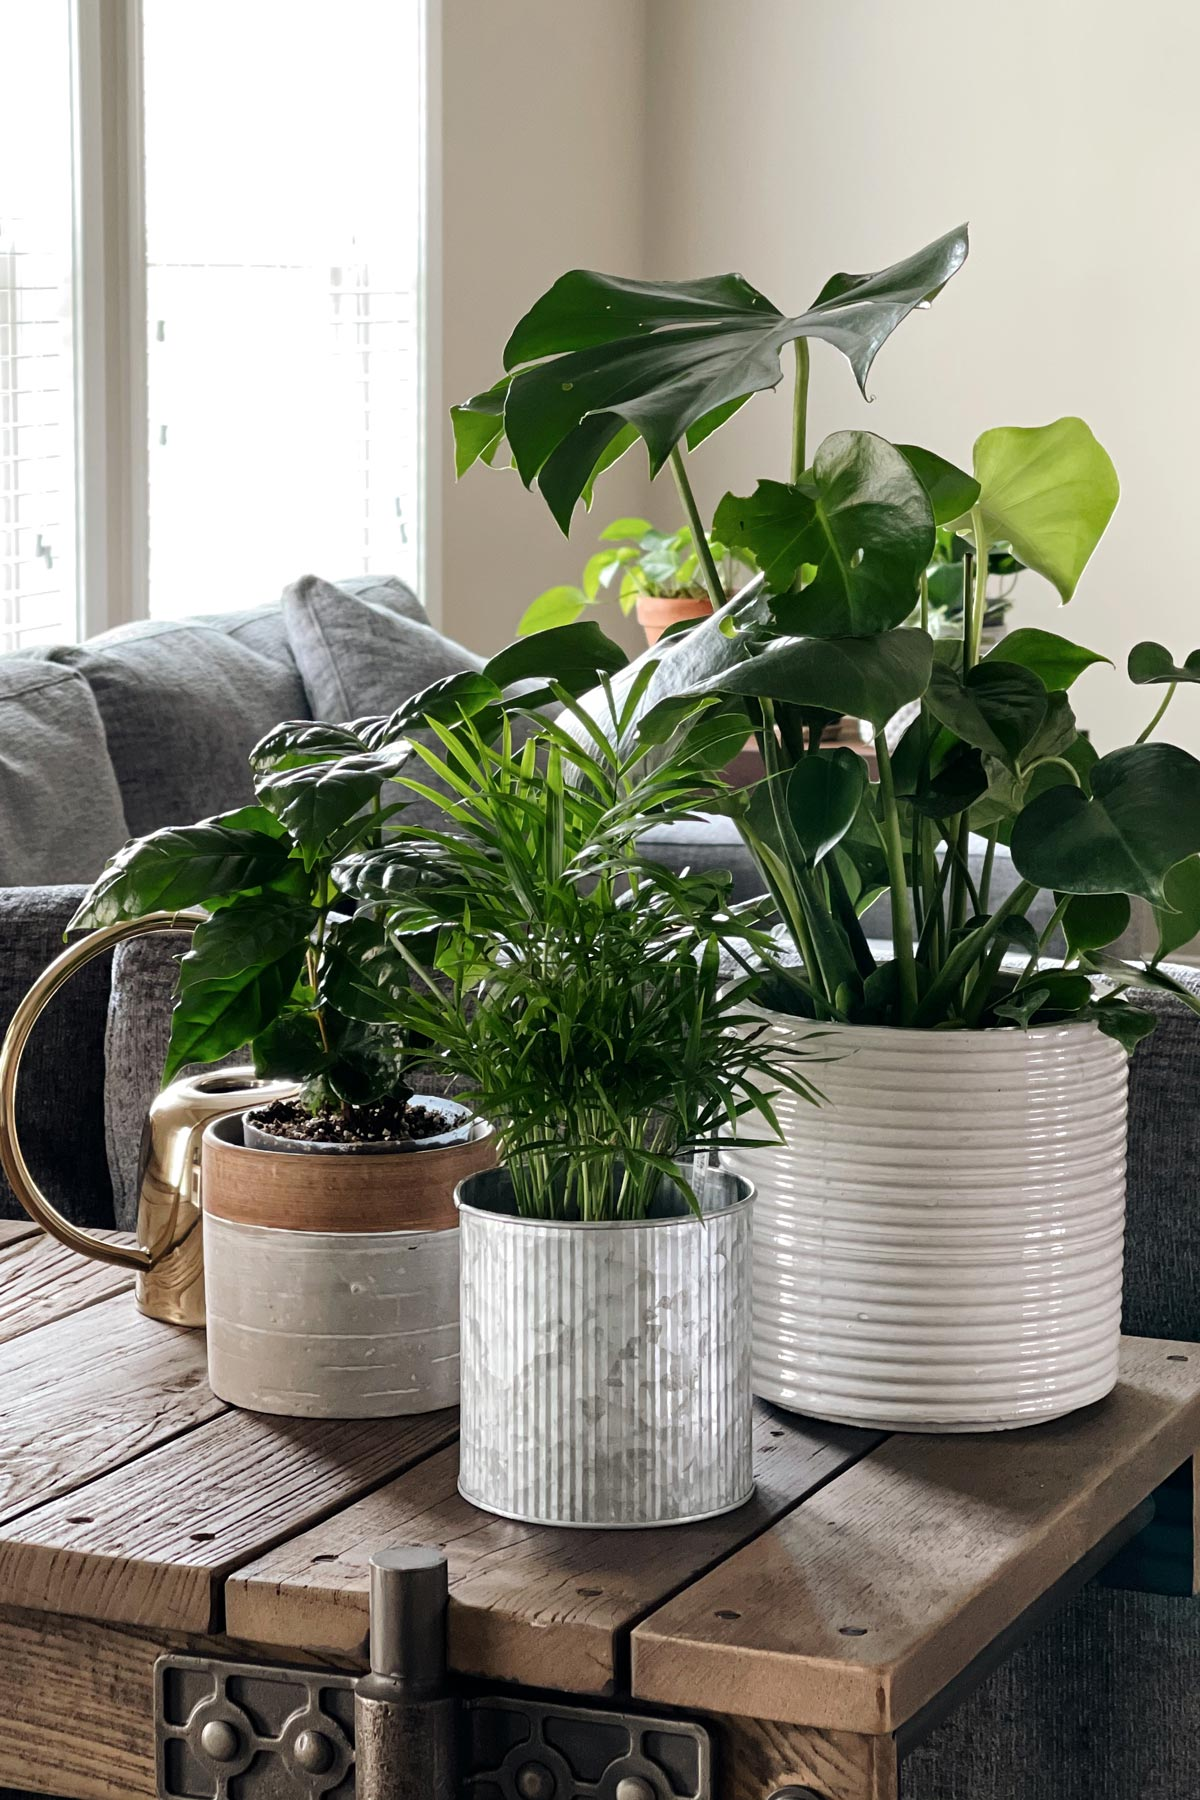 Houseplants from the front view in a living room setting